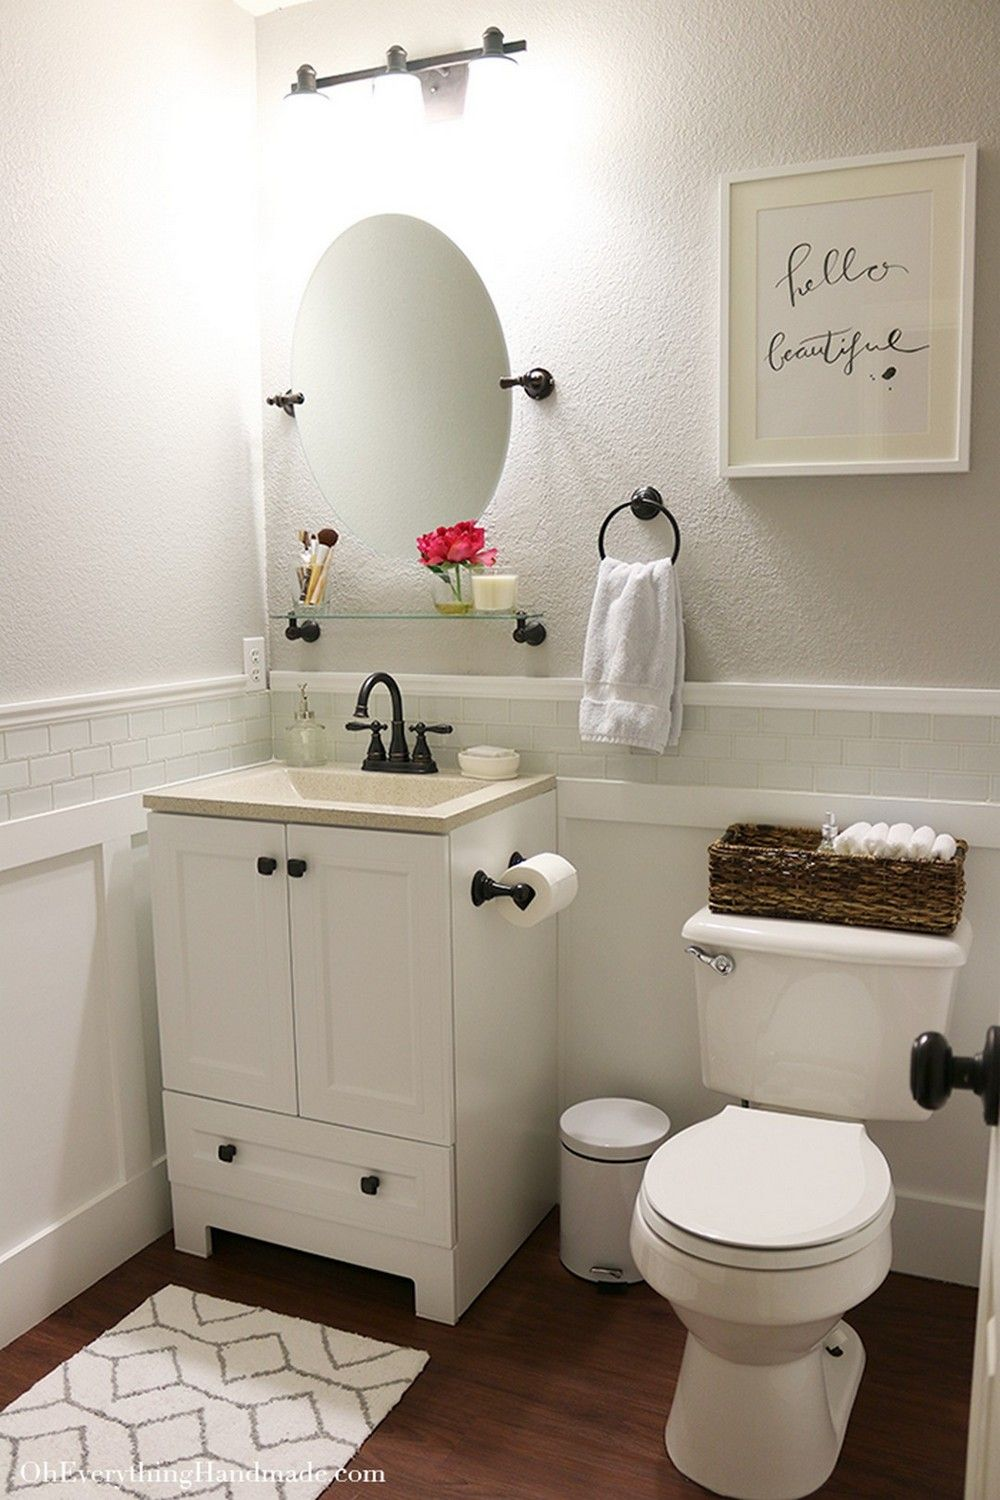 28 Design Tips To Make A Small Bathroom Better  Small Bathroom Amusing Small Bathroom Design Tips Inspiration